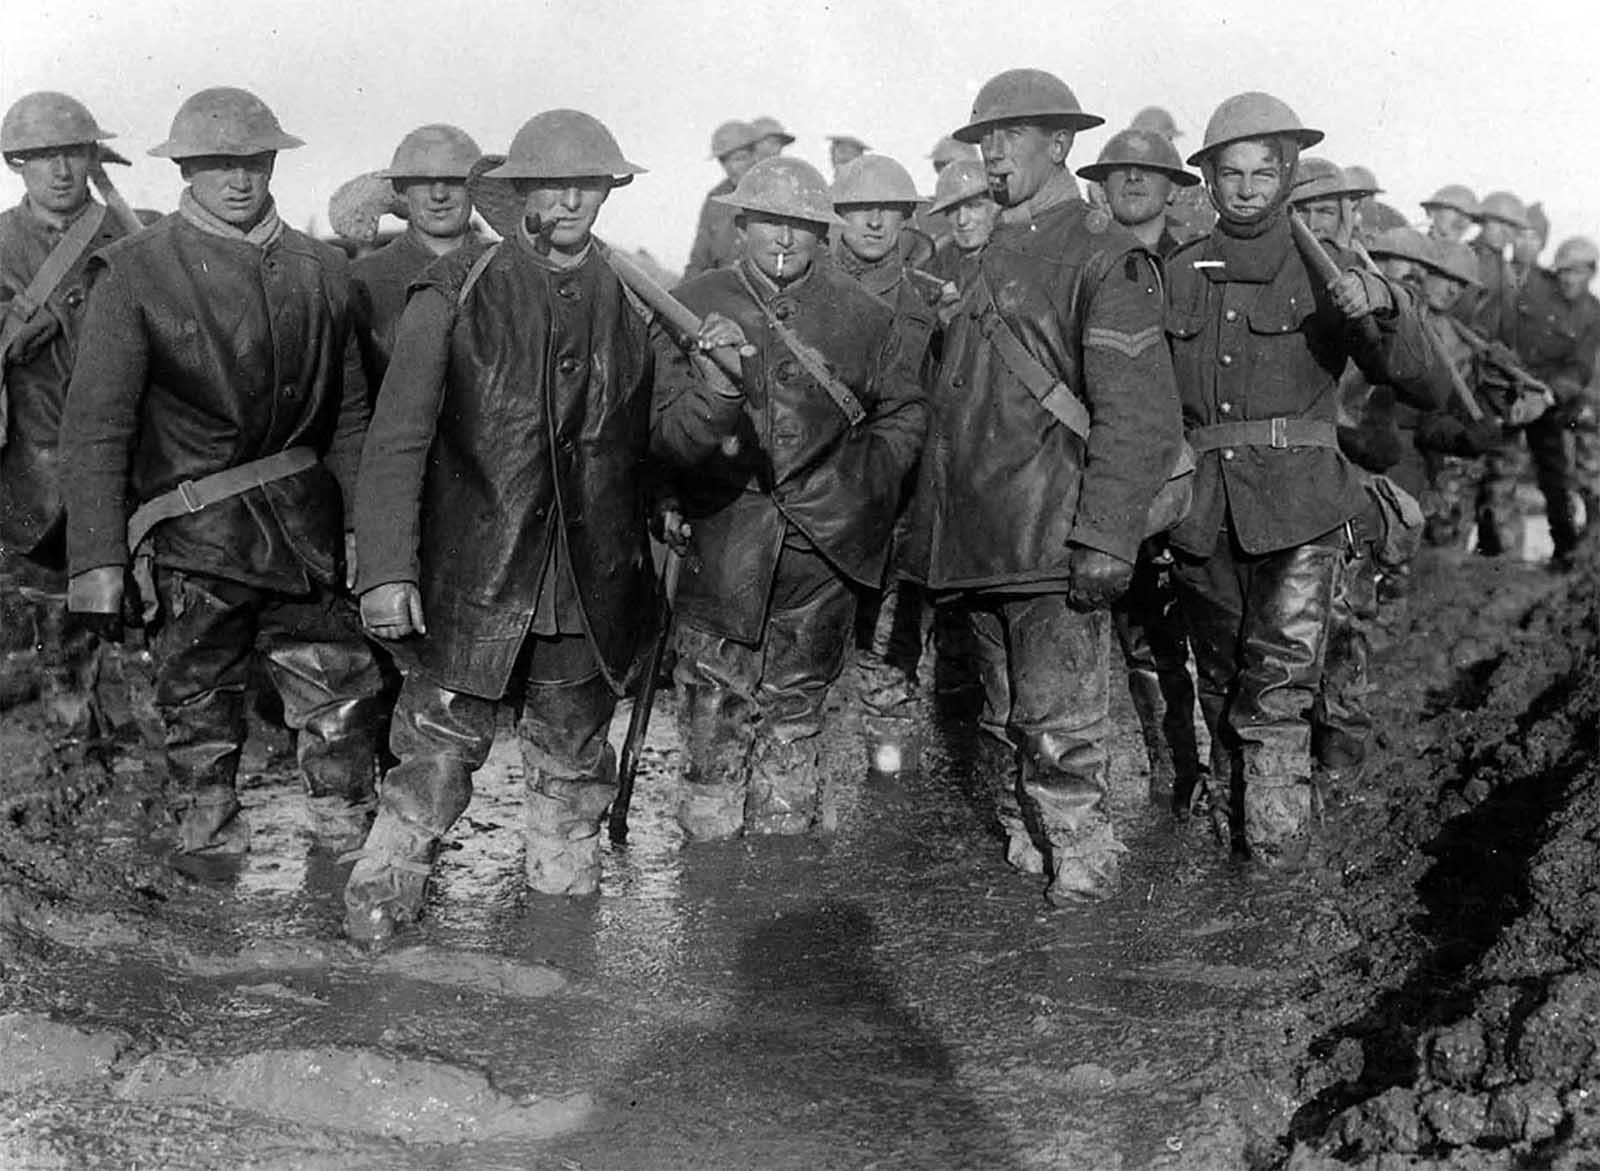 British soldiers standing in mud on the French front lines, ca. 1917.